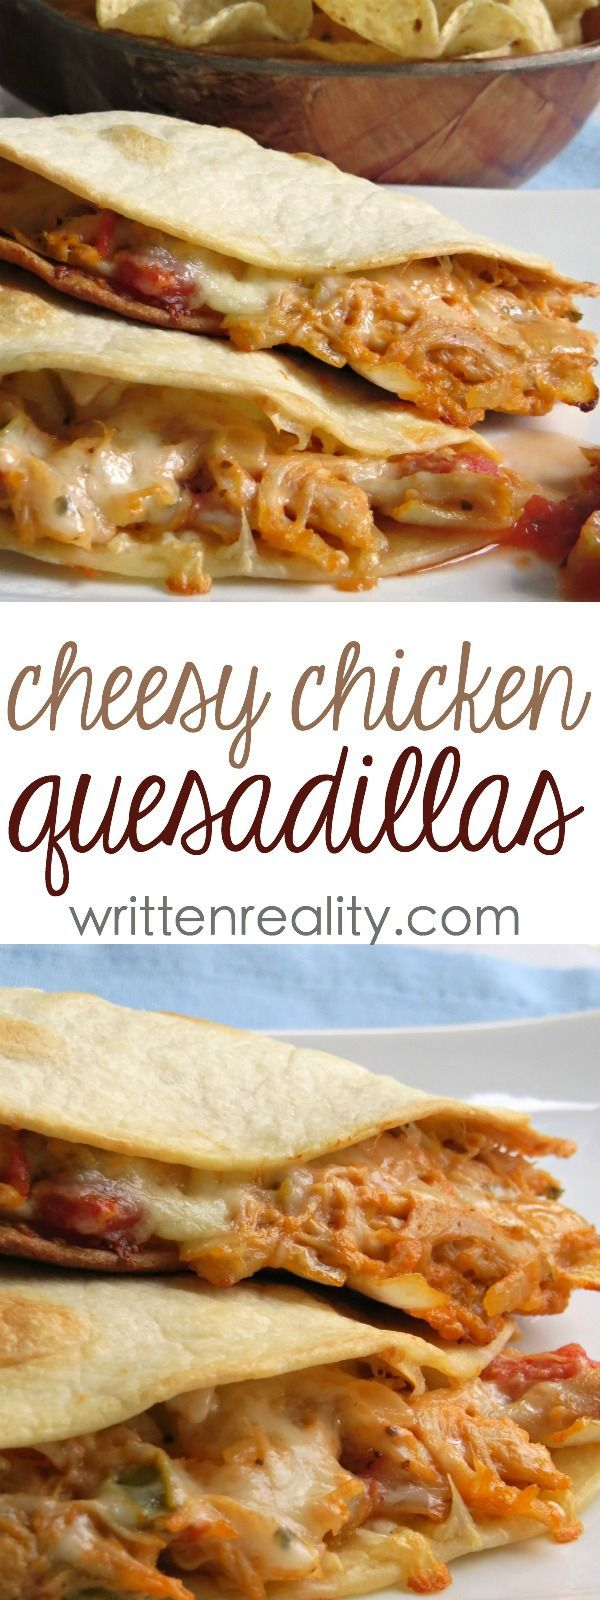 Cheesy Chicken Quesadillas #easyrecipes